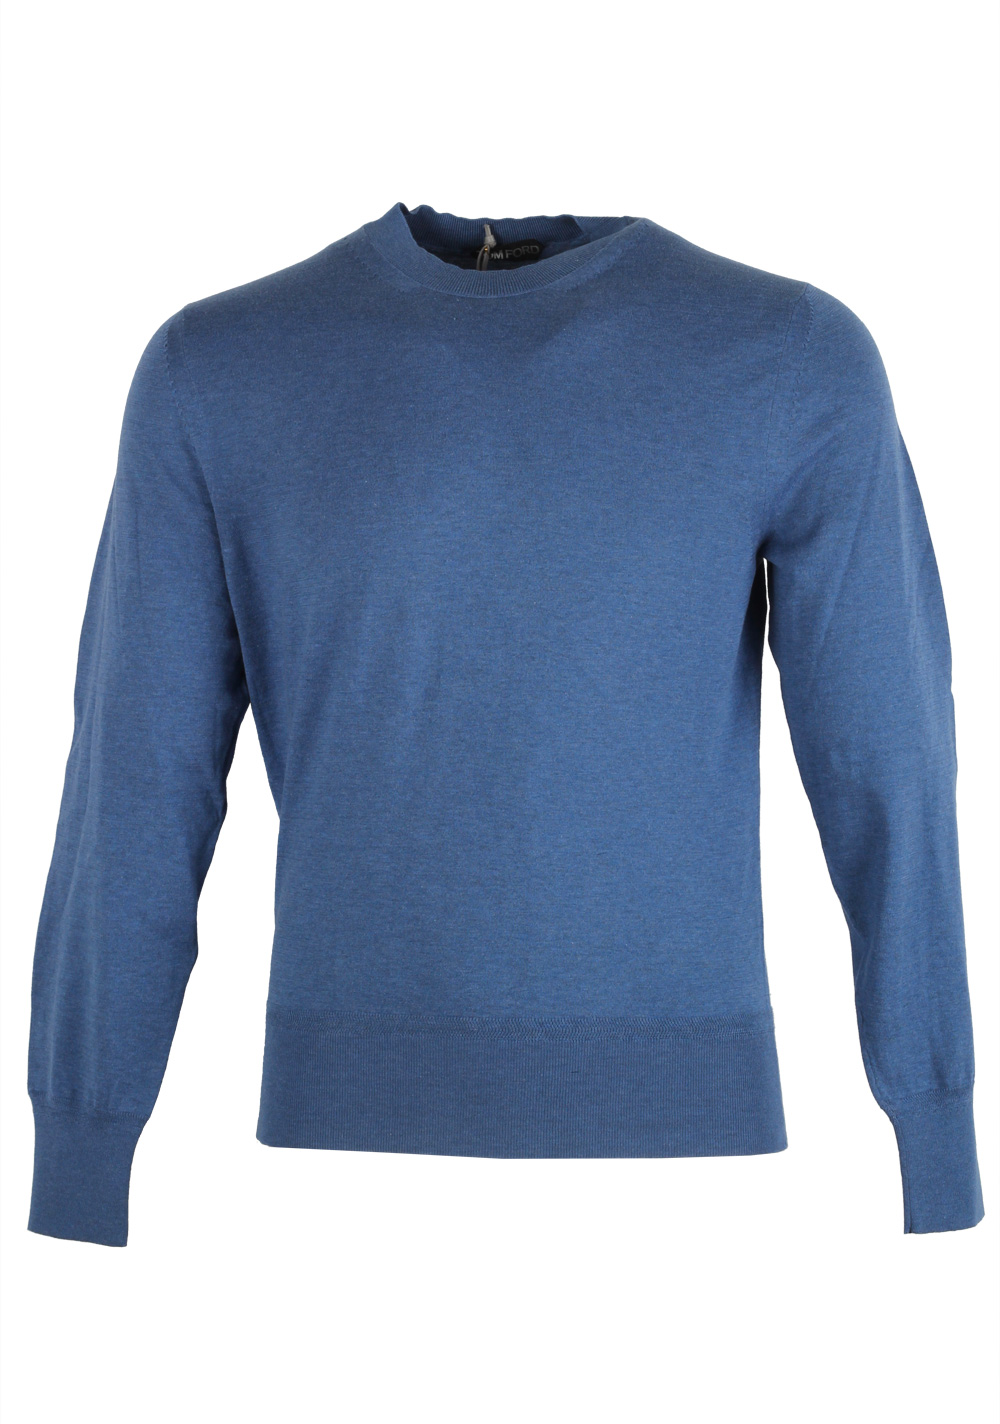 TOM FORD Blue Crew Neck Sweater Size 48 / 38R U.S. In Cotton | Costume Limité